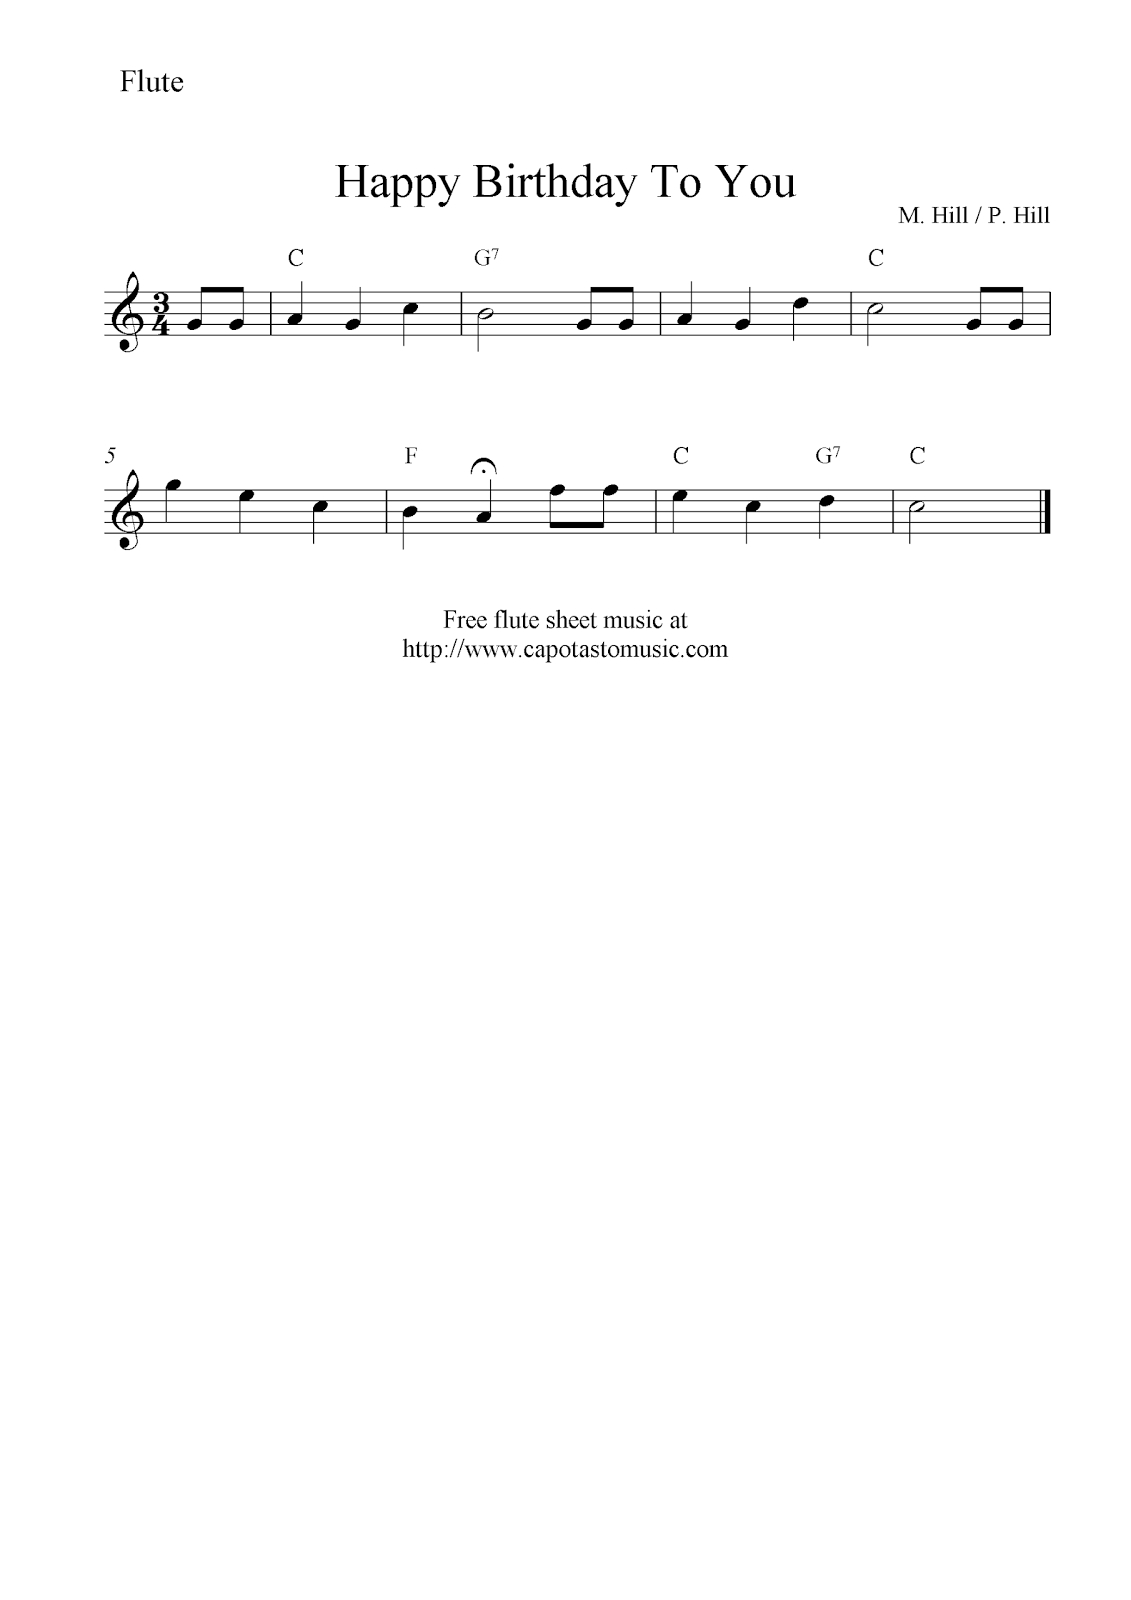 Happy Birthday To You, Free Flute Sheet Music Notes - Free Printable Flute Music